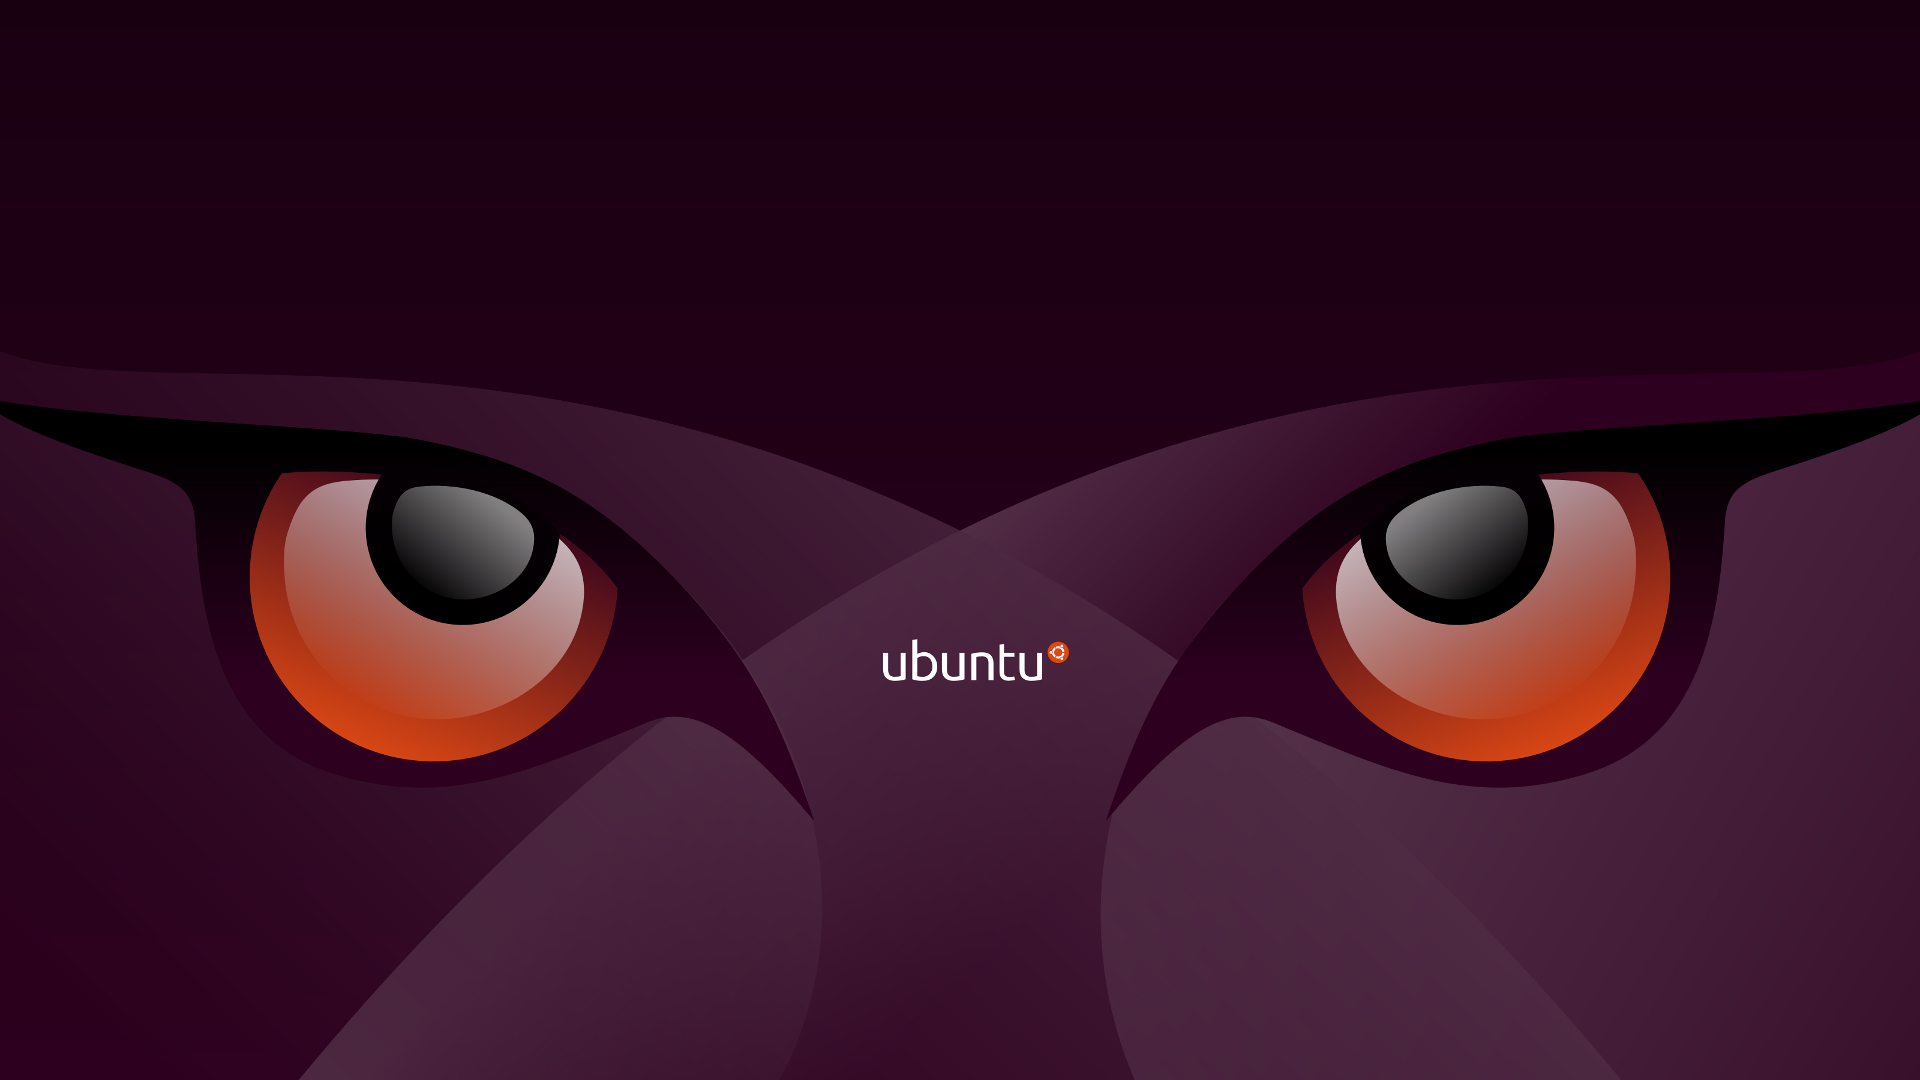 ubuntu desktop wallpapers